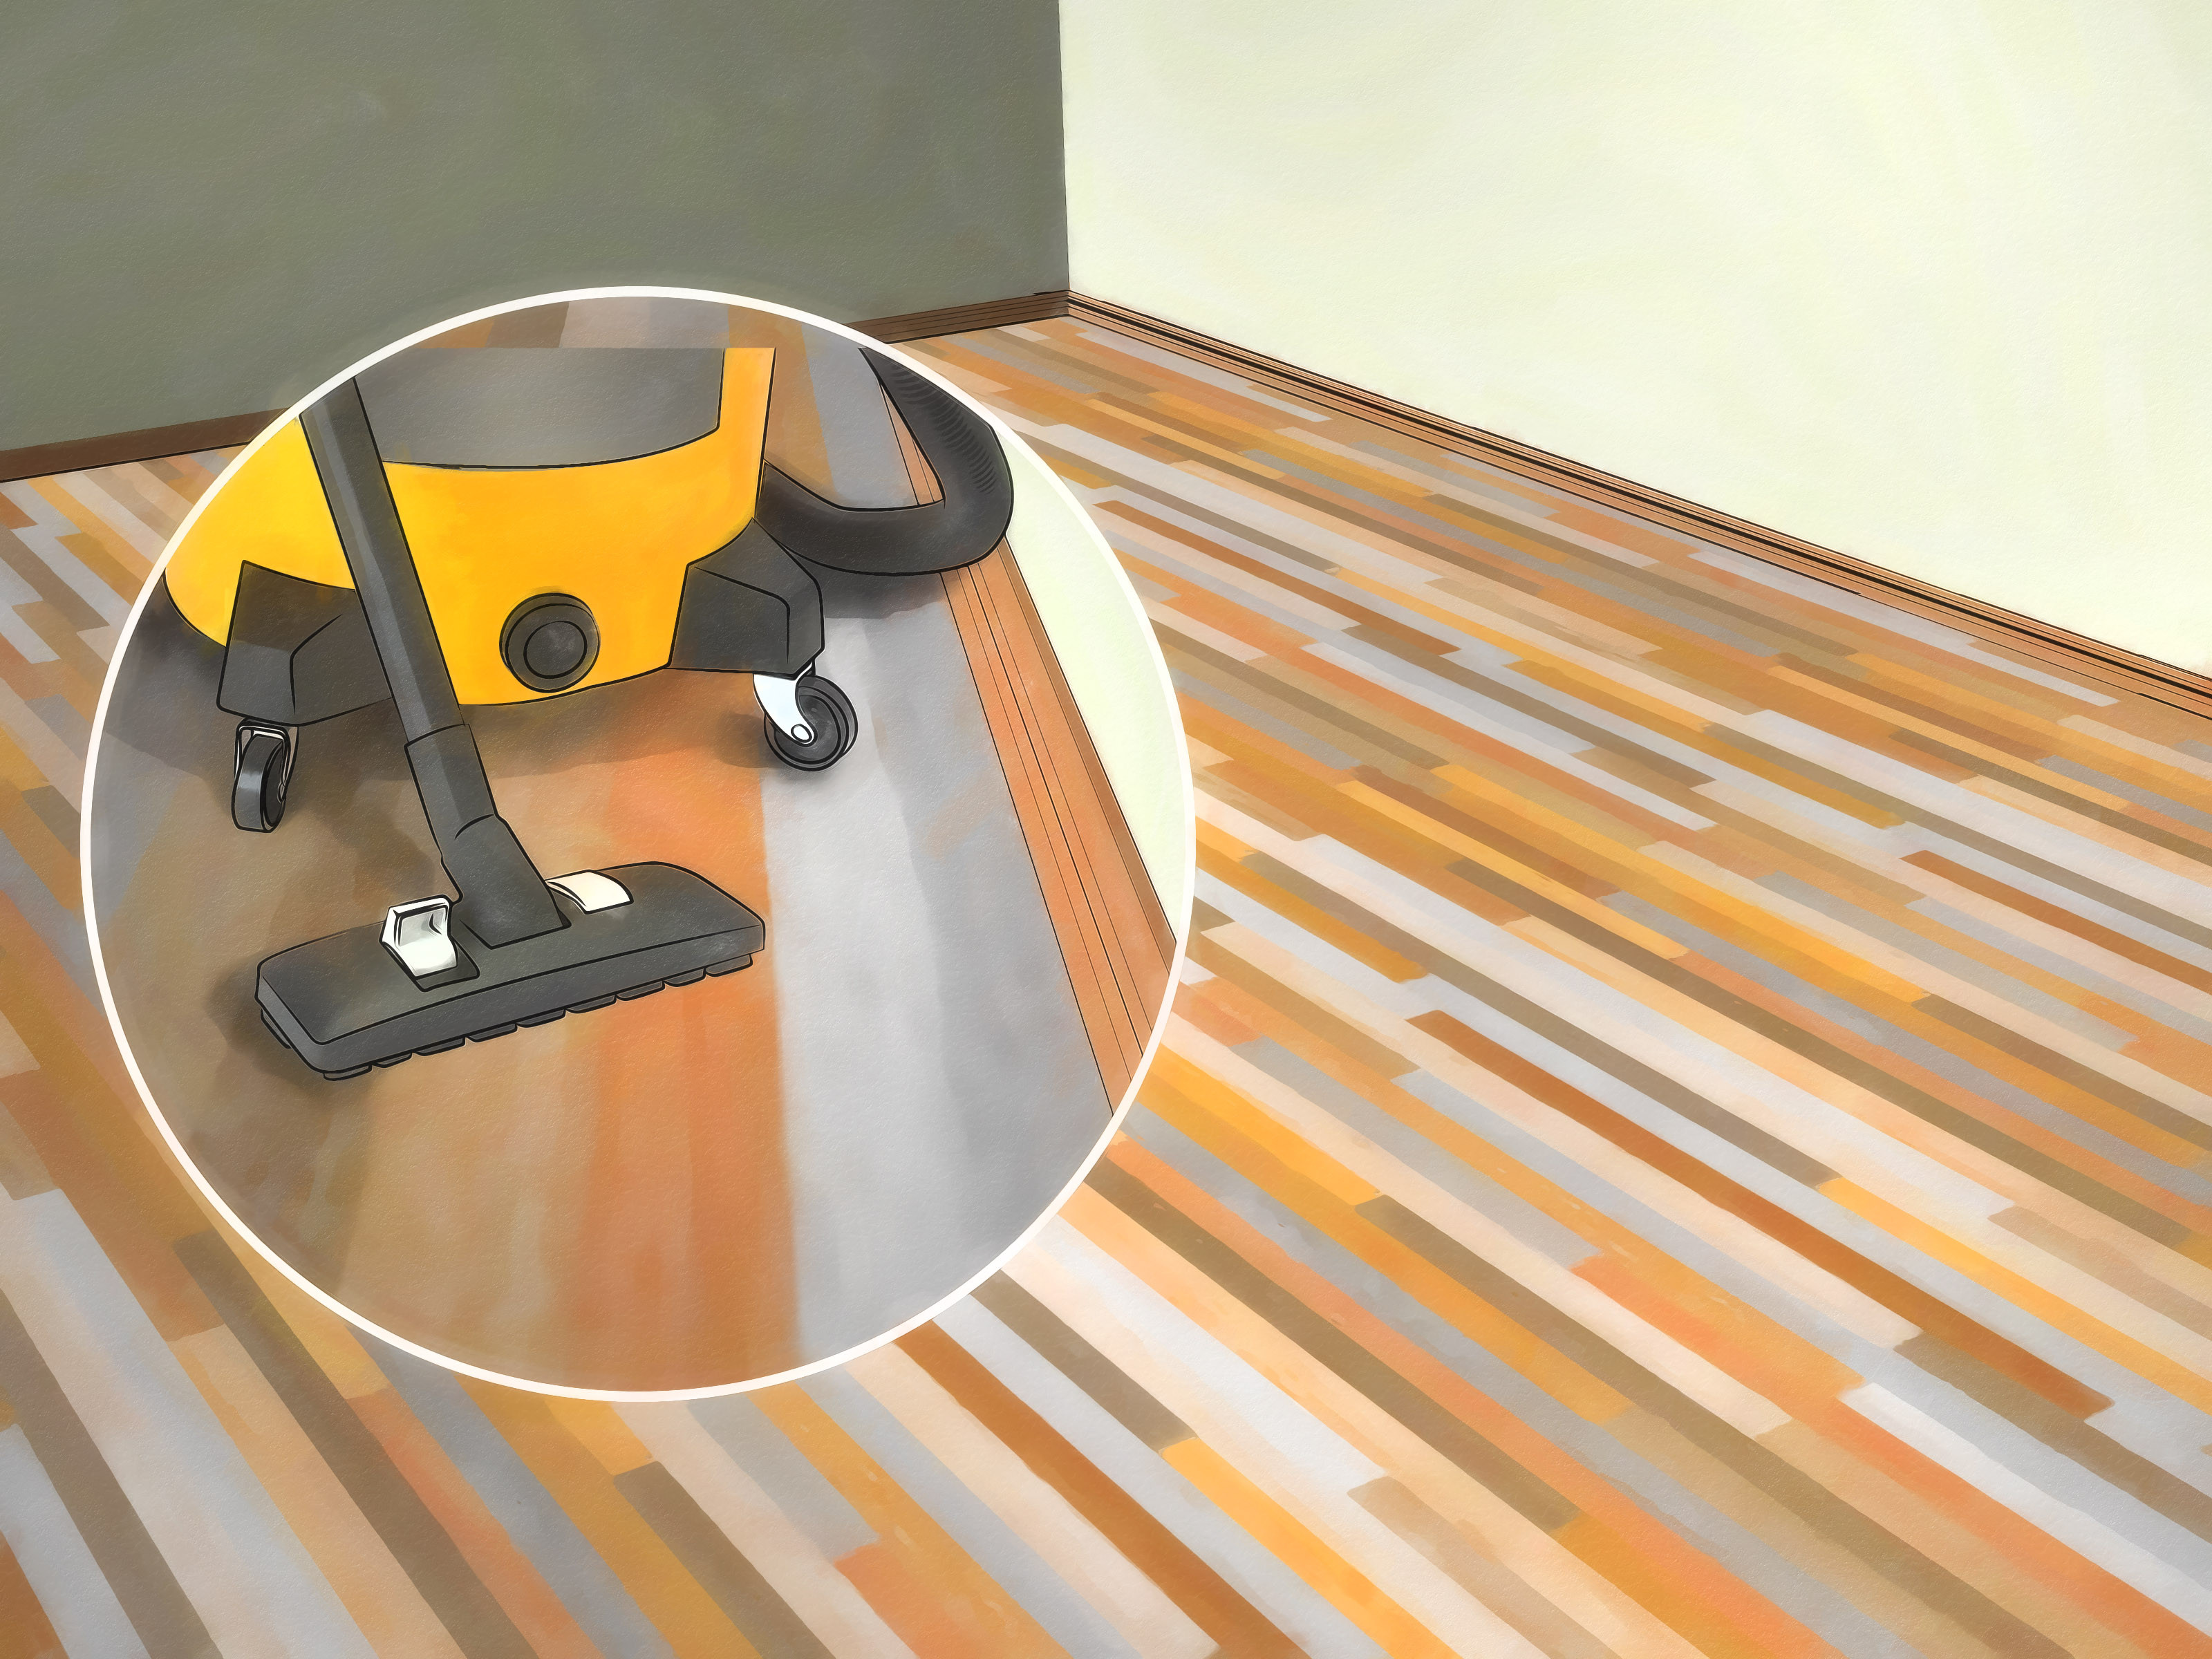 floating hardwood floor on concrete of how to sand hardwood floors with pictures wikihow regarding sand hardwood floors step 22